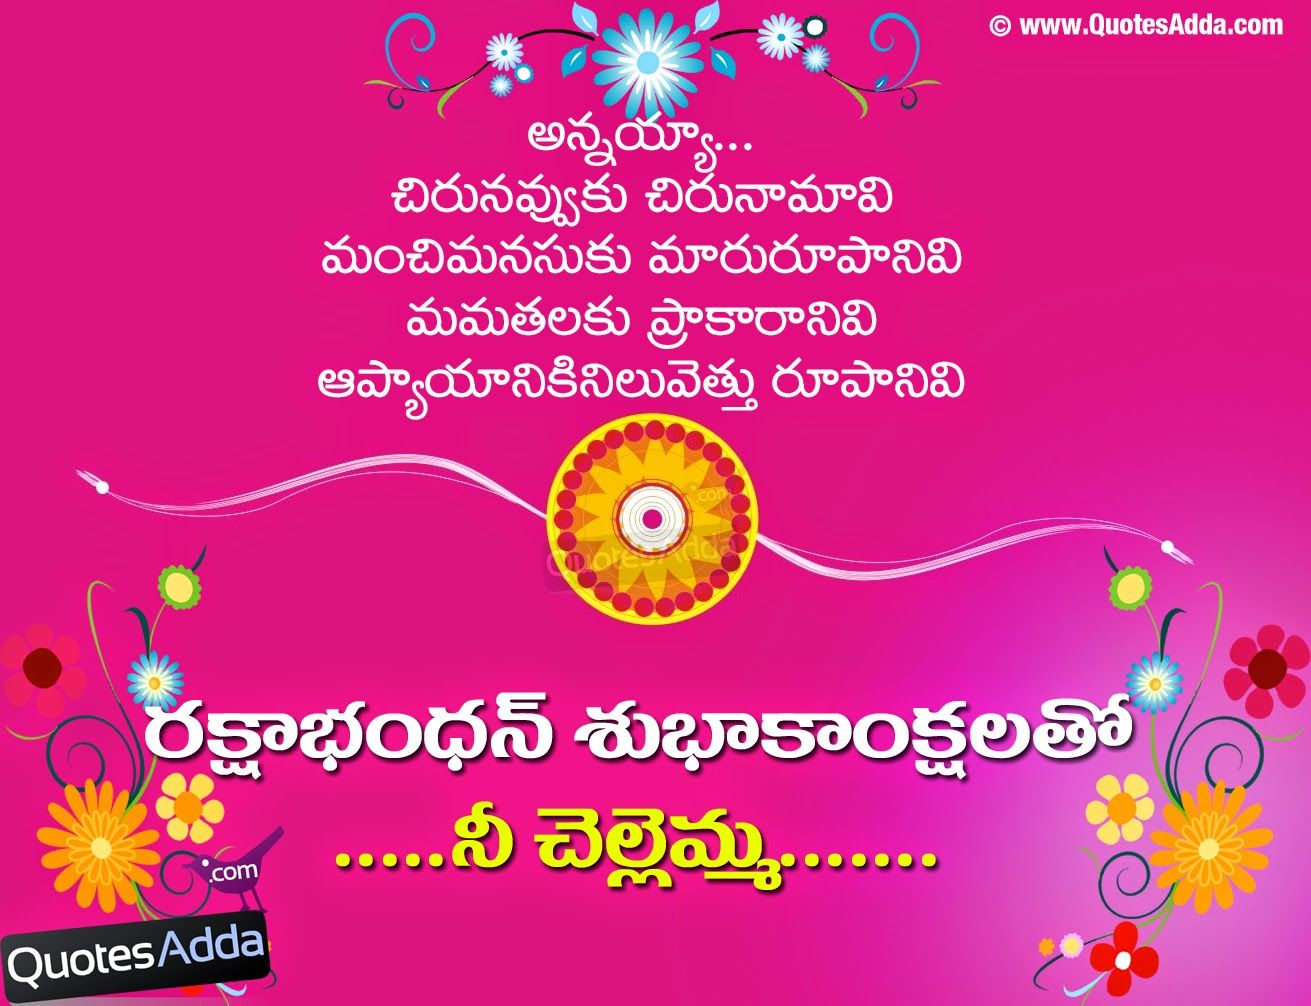 Telugu happy raksha bandhan quotes for sisters quotesadda telugu happy raksha bandhan quotes for sisters quotesadda telugu quotes tamil kristyandbryce Image collections